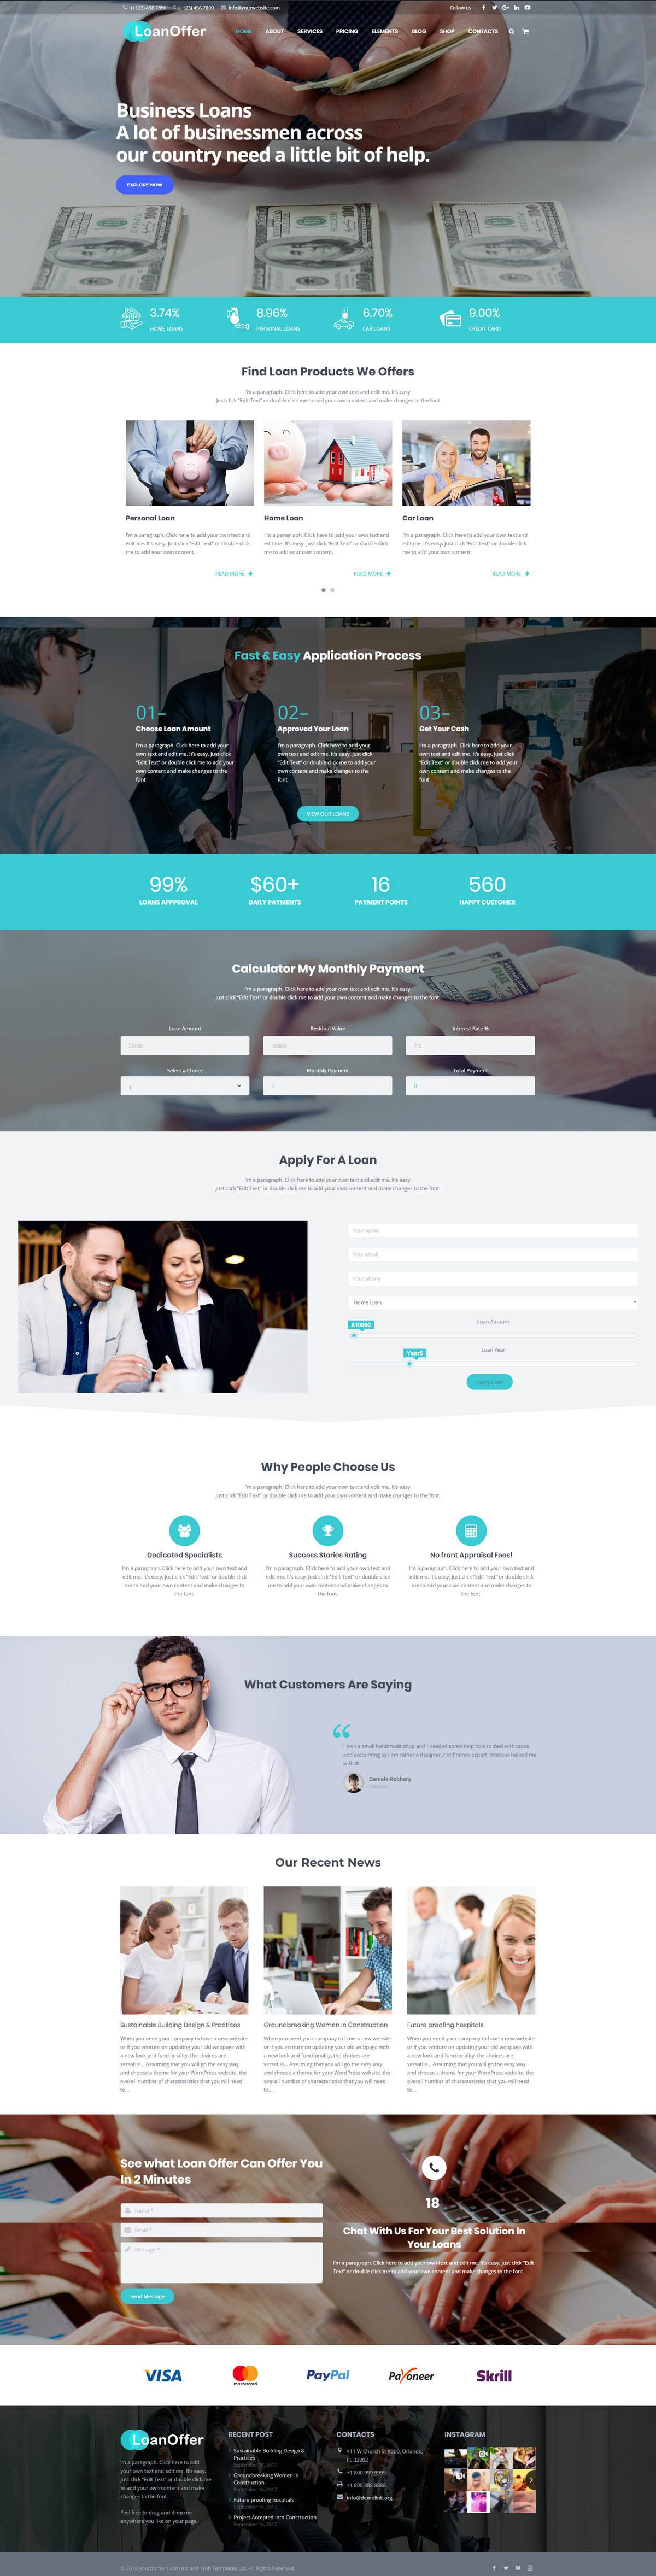 LoanOffer - Business Loan WordPress Theme Screenshot 1